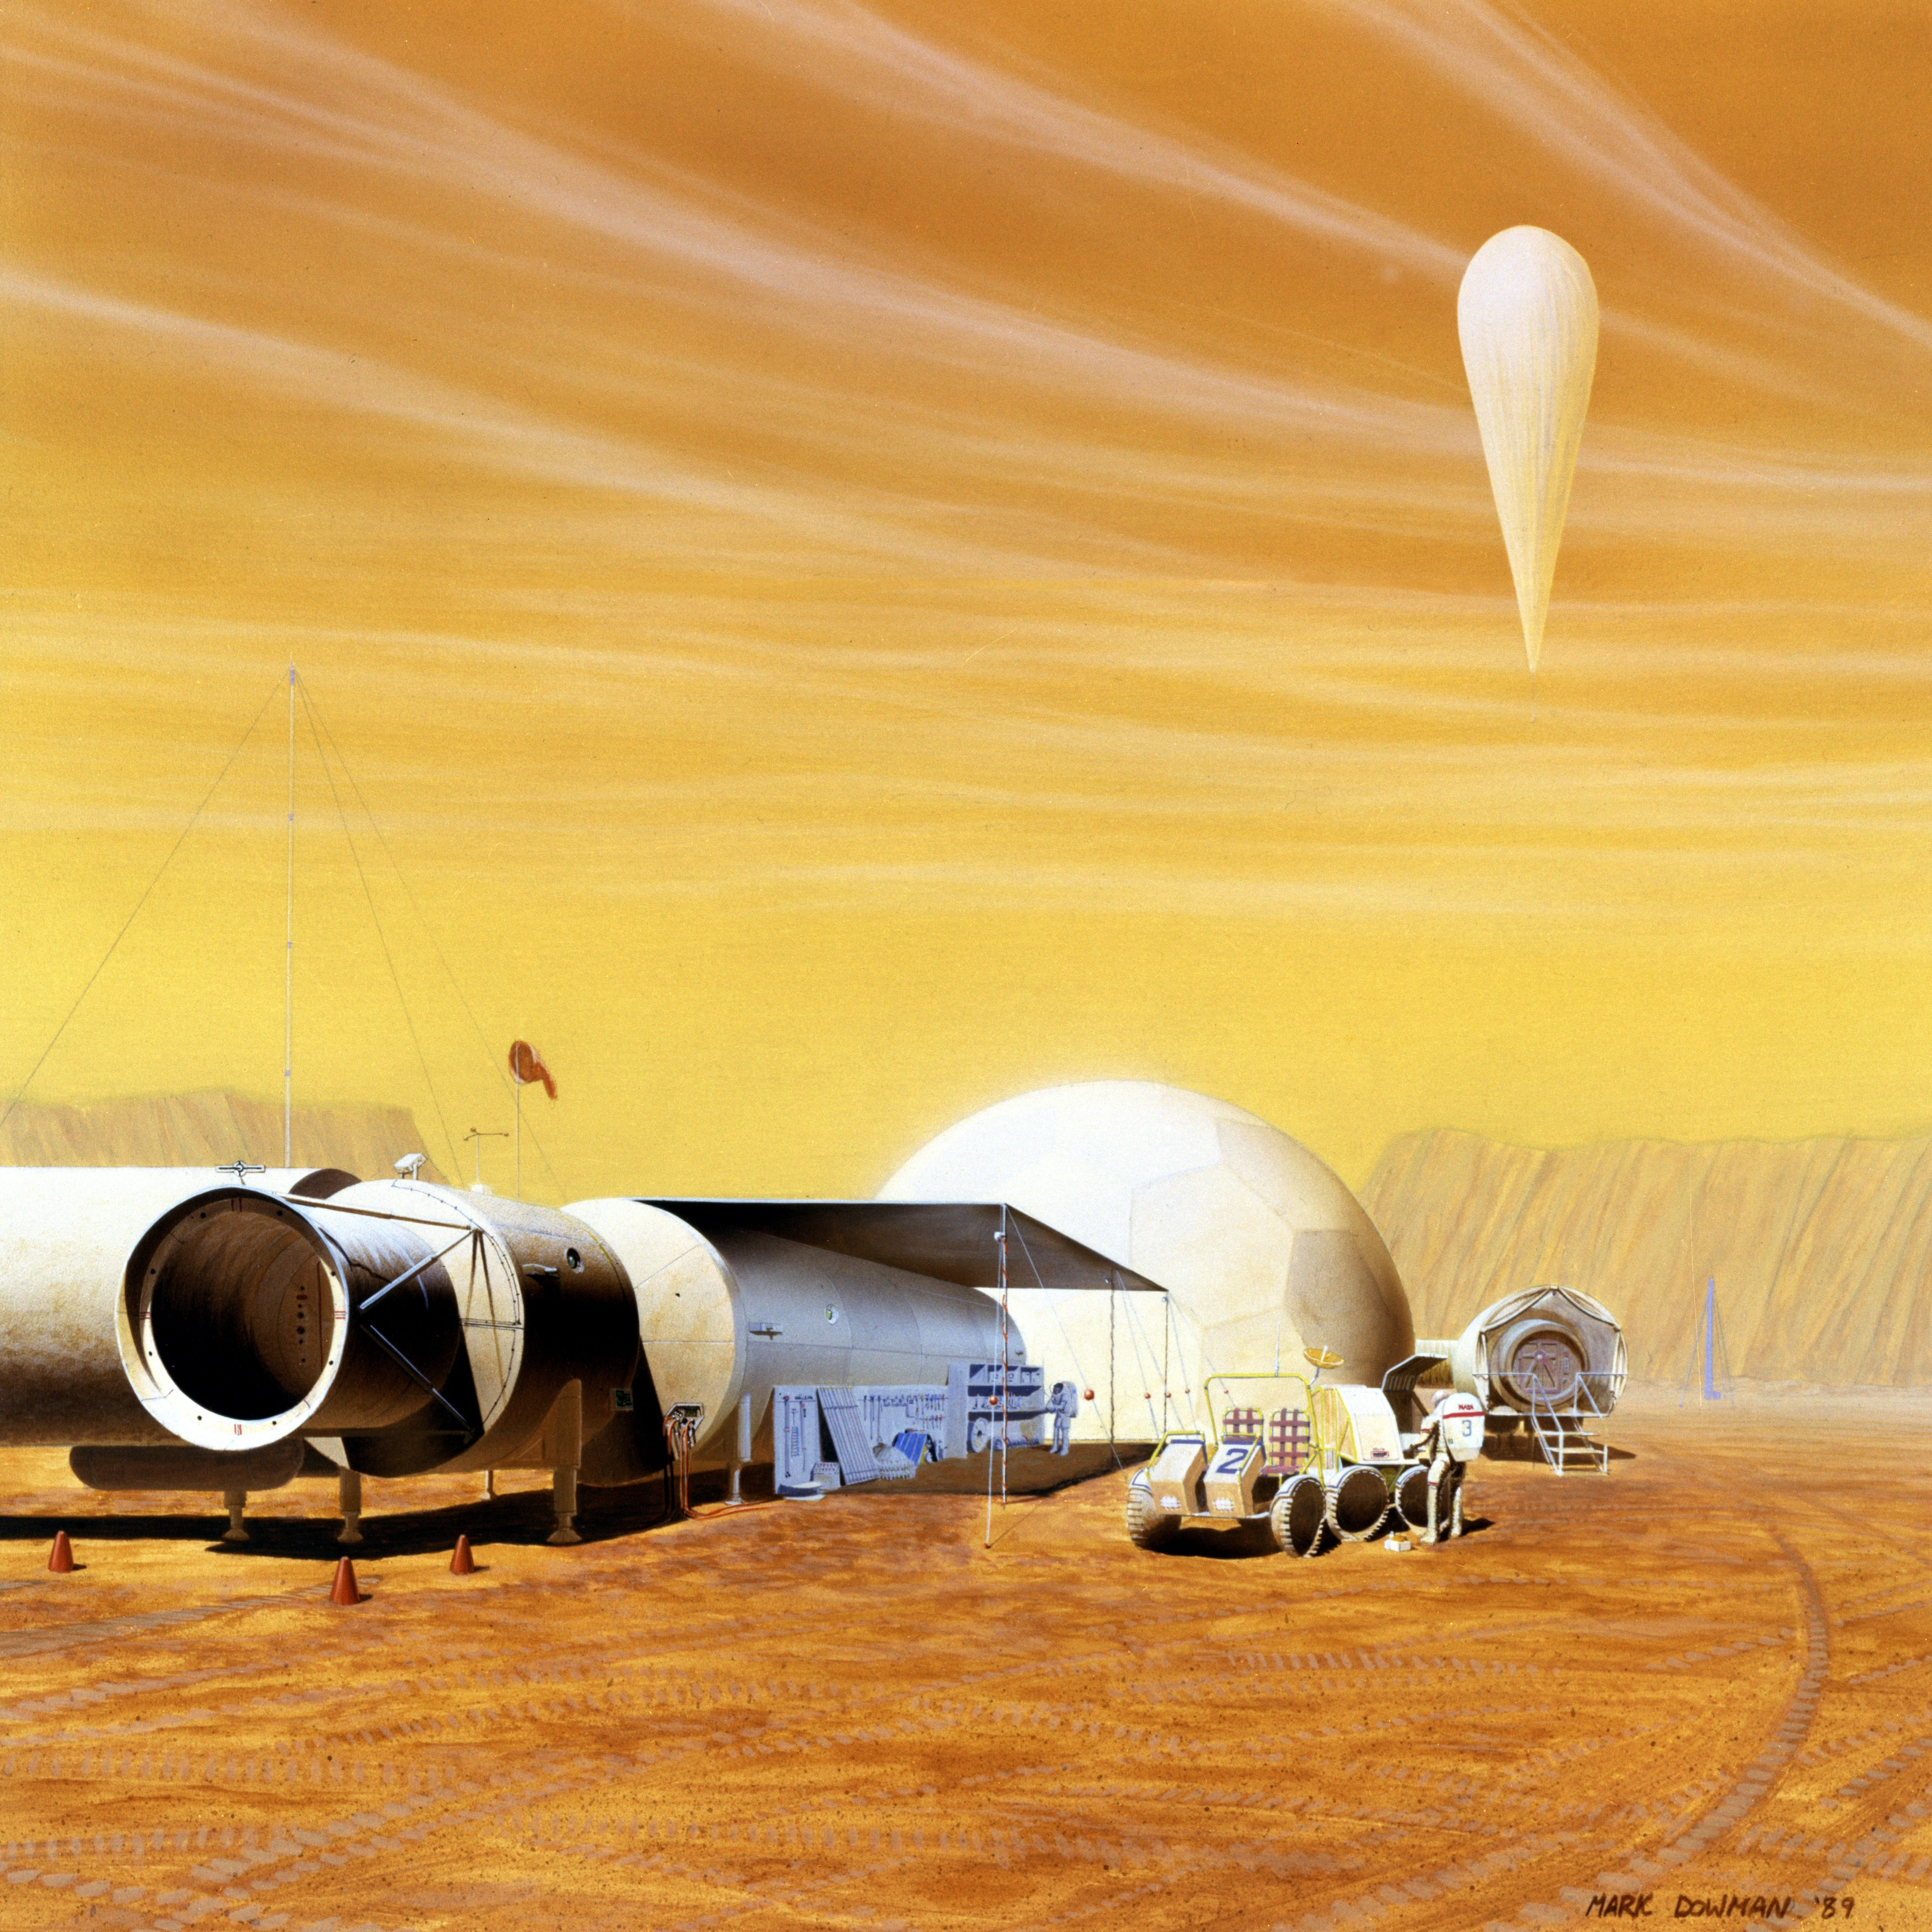 the history of human exploration of mars A human mission to mars has been the subject of science fiction, aerospace engineering, and scientific proposals since the 19th centurythe plans comprise proposals to land on mars, eventually settling on and terraforming the planet, while utilizing its moons, phobos and deimos.